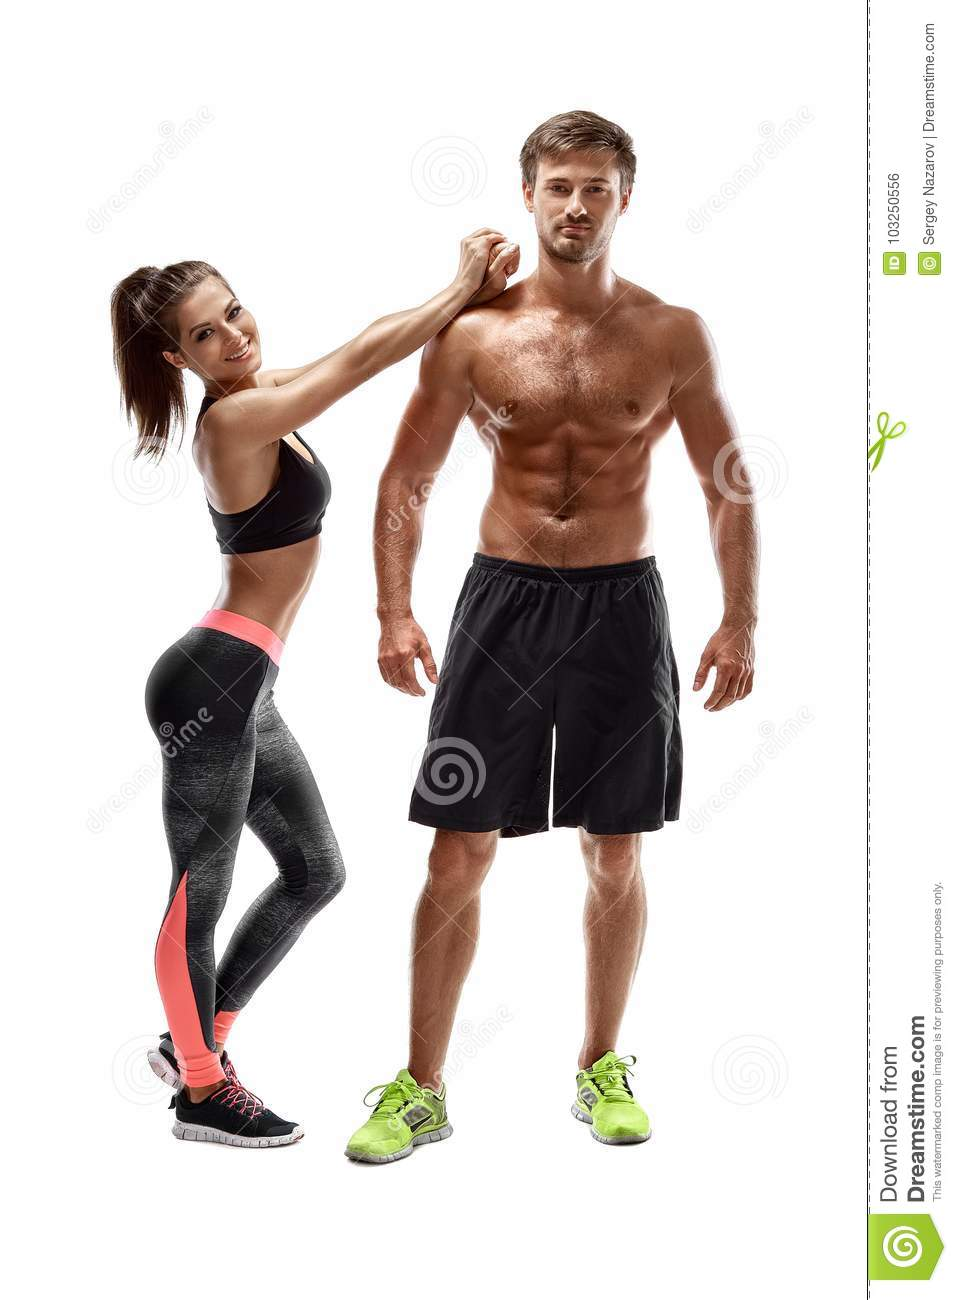 Download Sport Fitness Workout Concept Fit Couple Strong Muscular Man And Slim